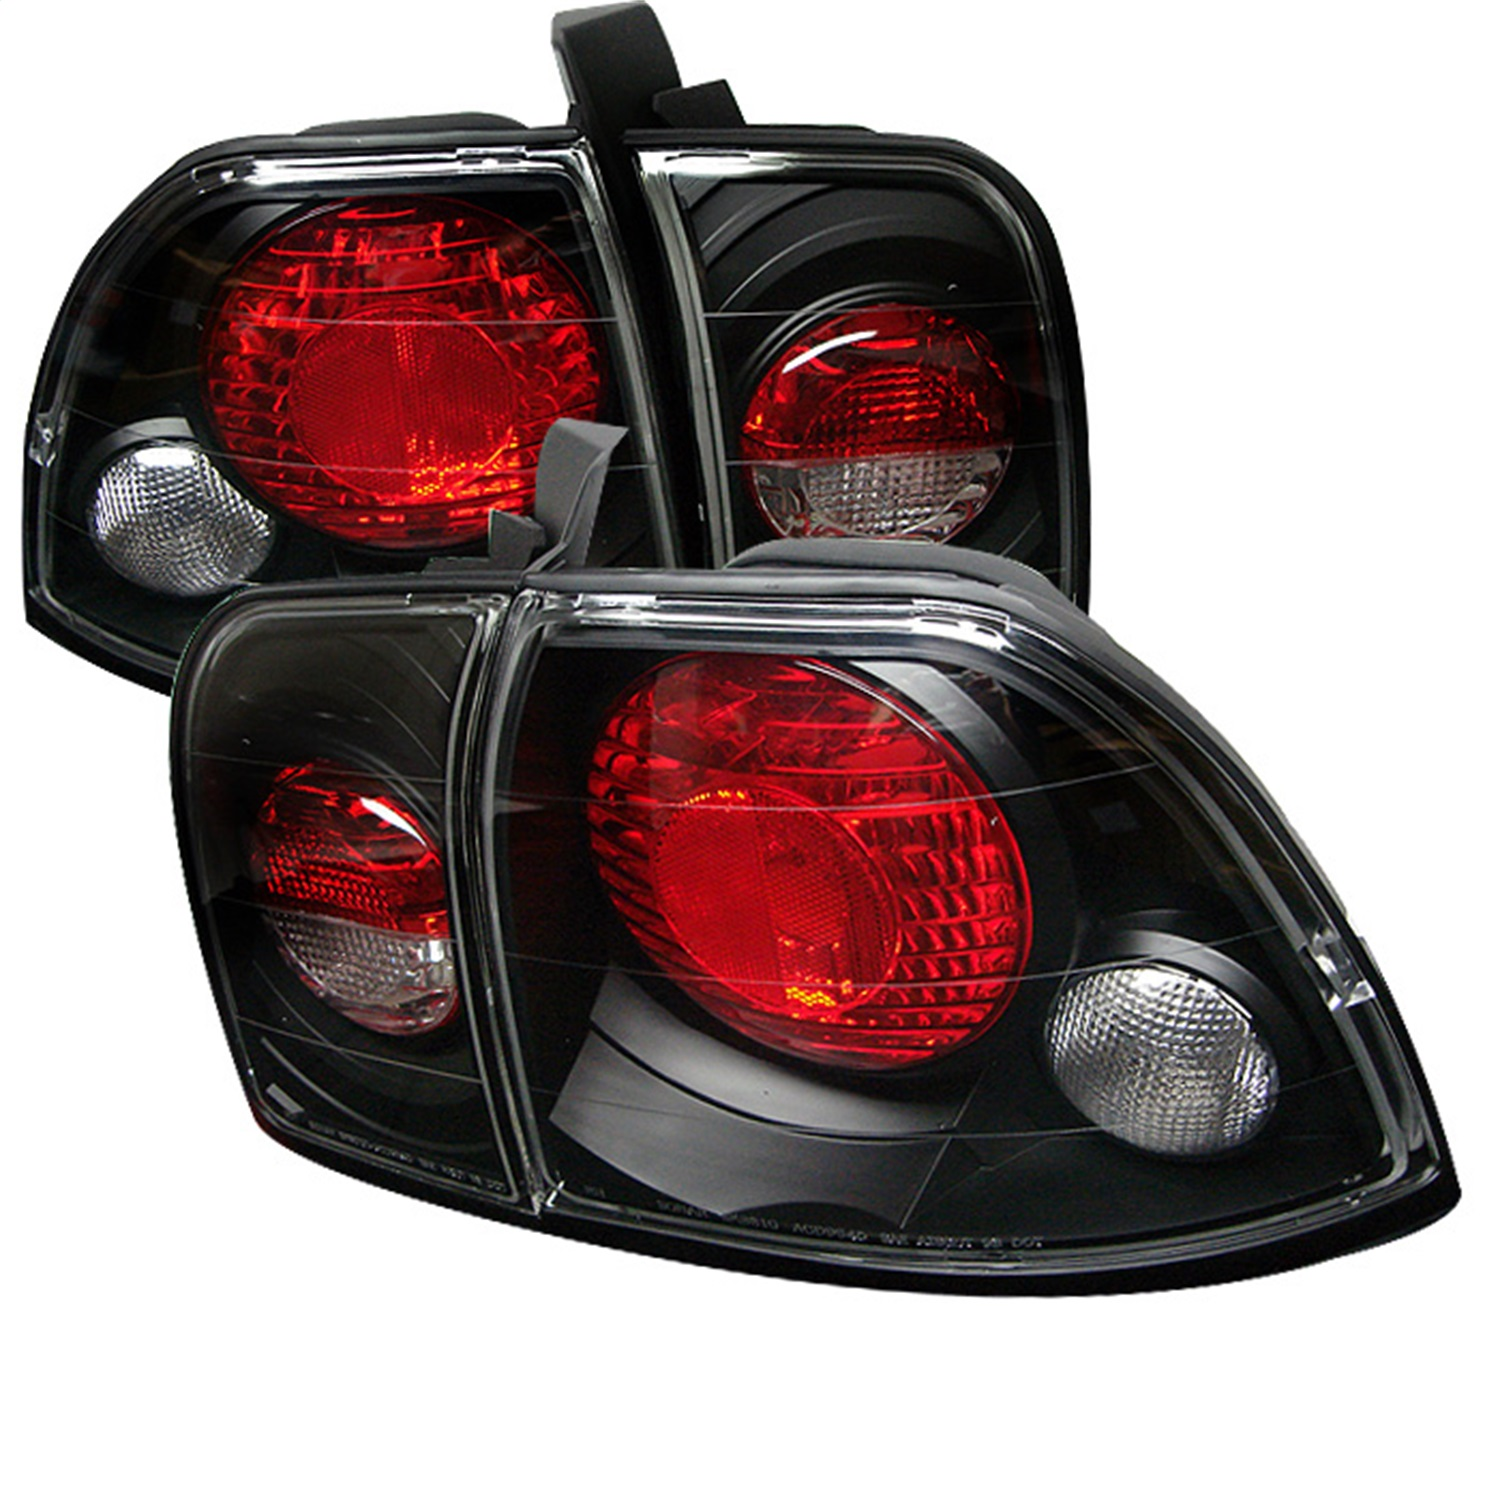 Spyder Auto 5004215 Euro Style Tail Lights Fits 96-97 Accord